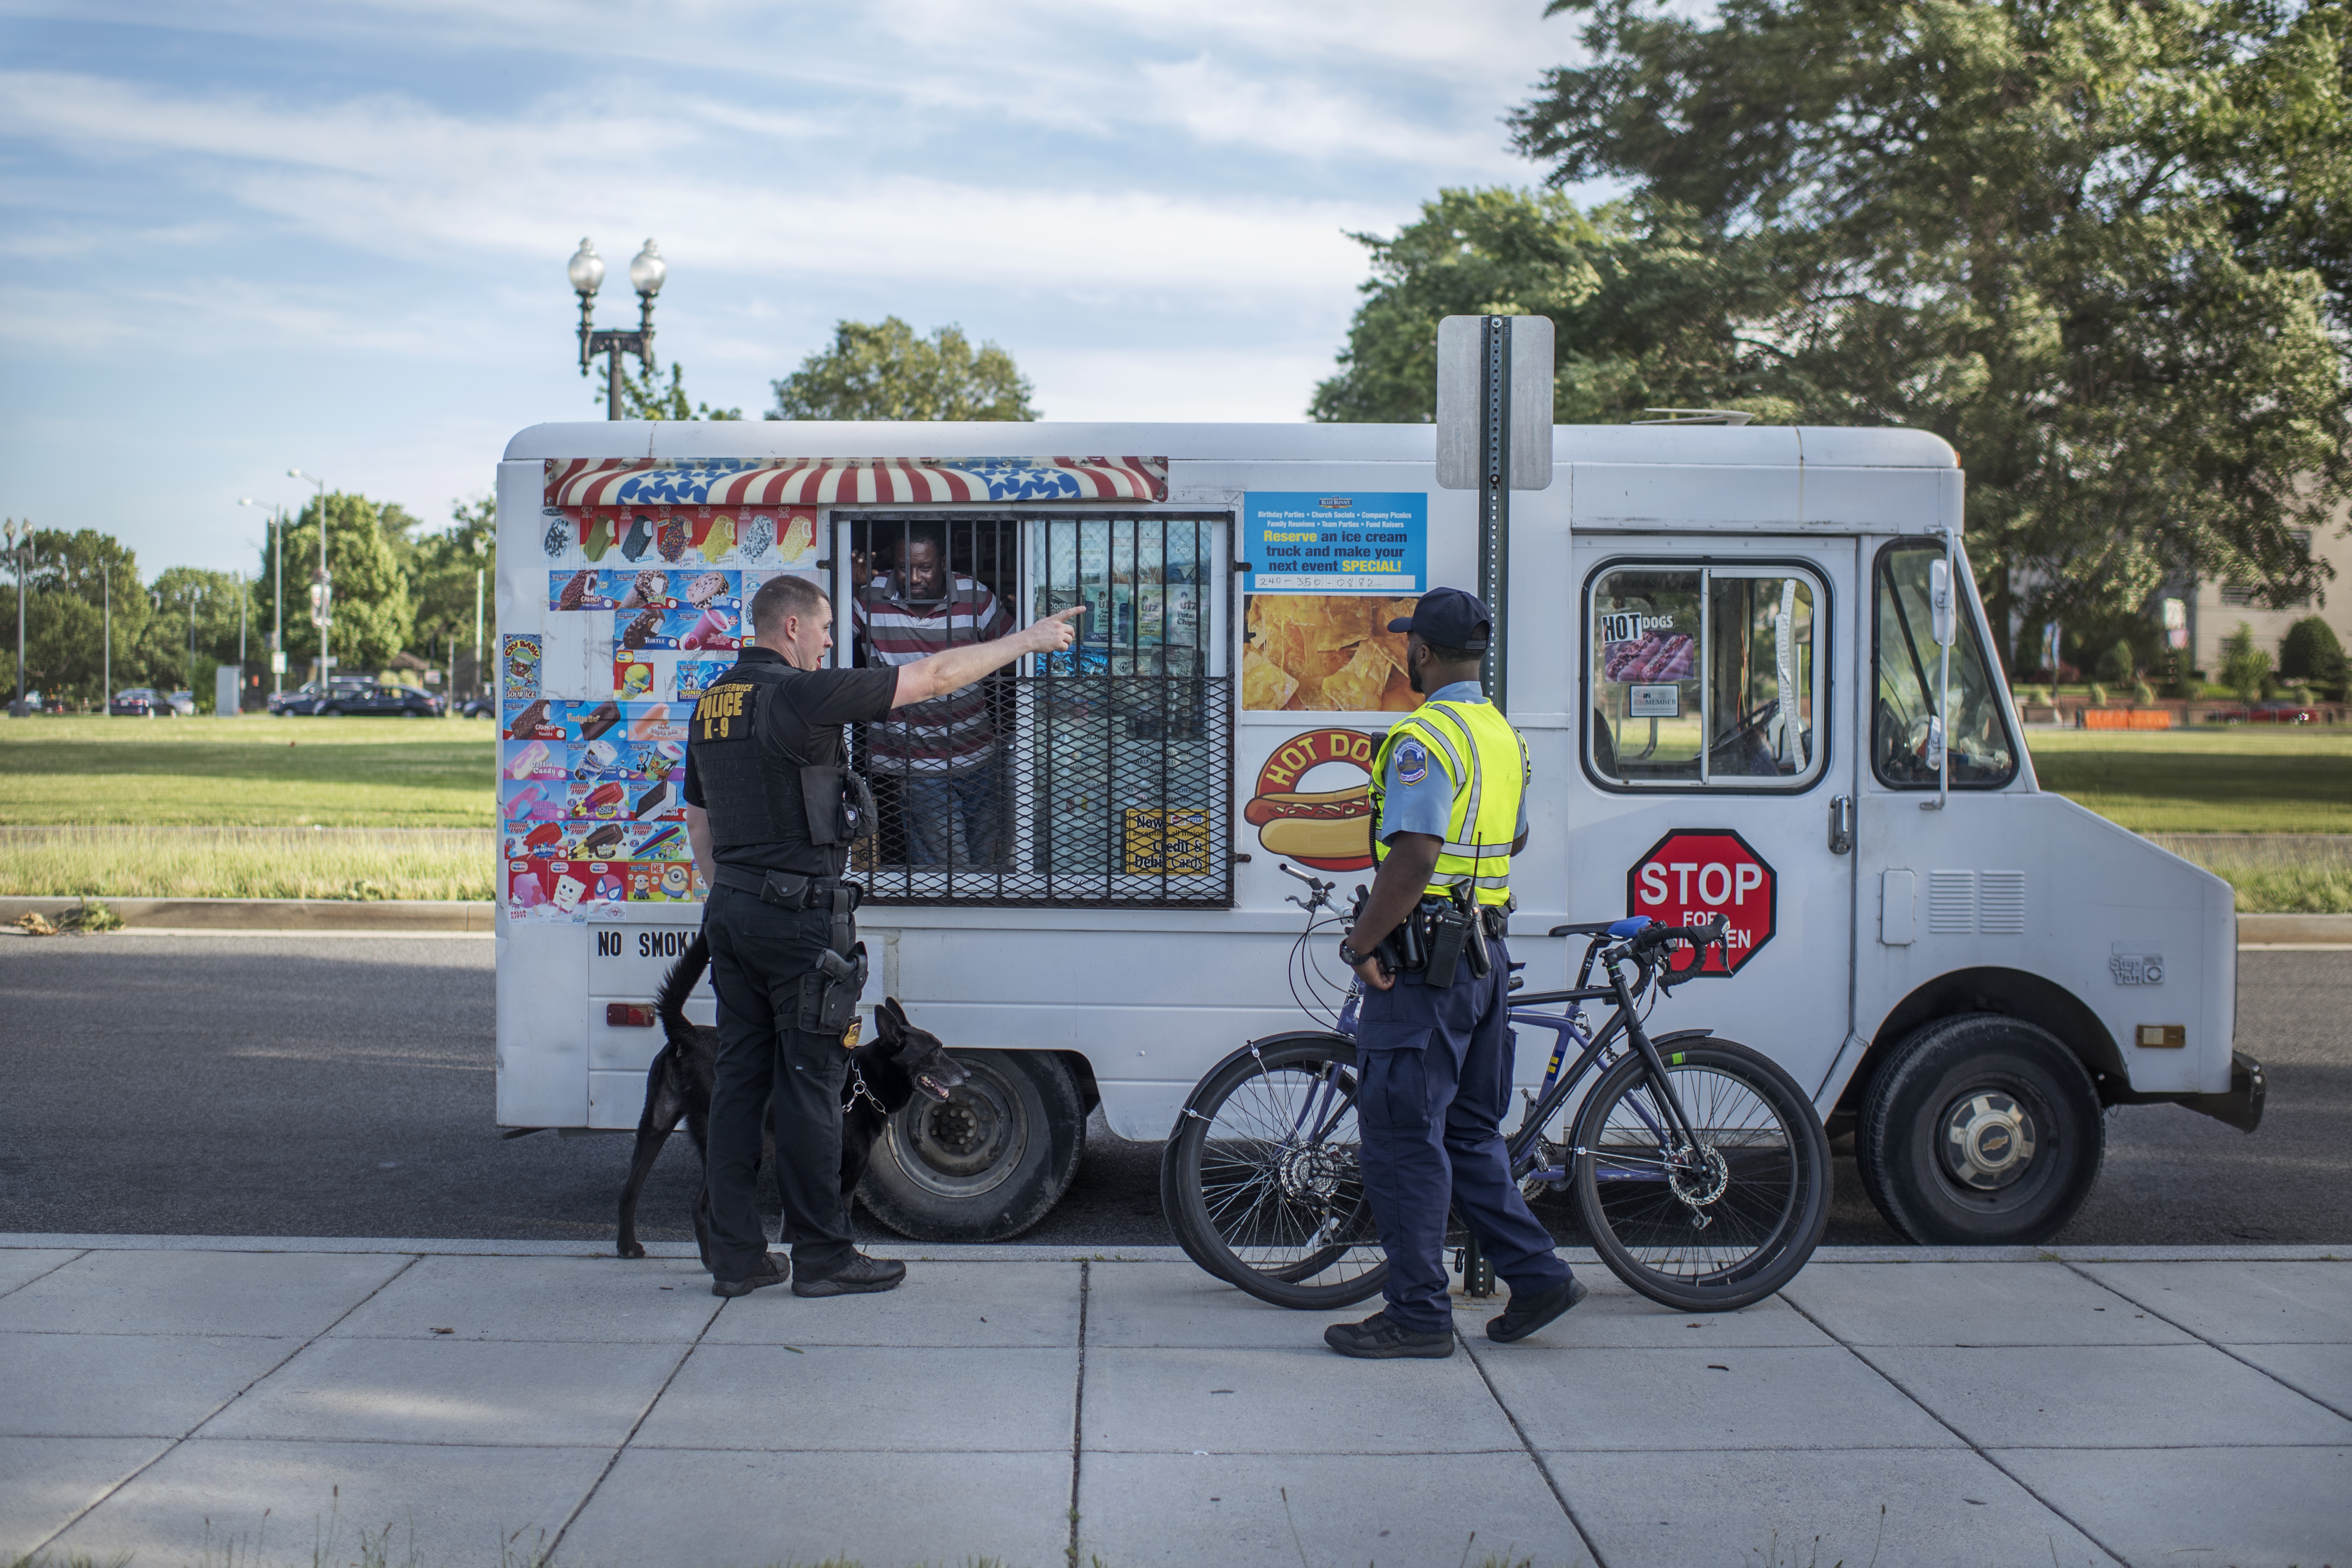 Police direct an ice cream truck to move during a rally for Democratic presidential candidate Sen. Bernie Sanders, I-Vt., outside of RFK Stadium in Washington, DC, June 9. (Photo By Tom Williams/CQ Roll Call)